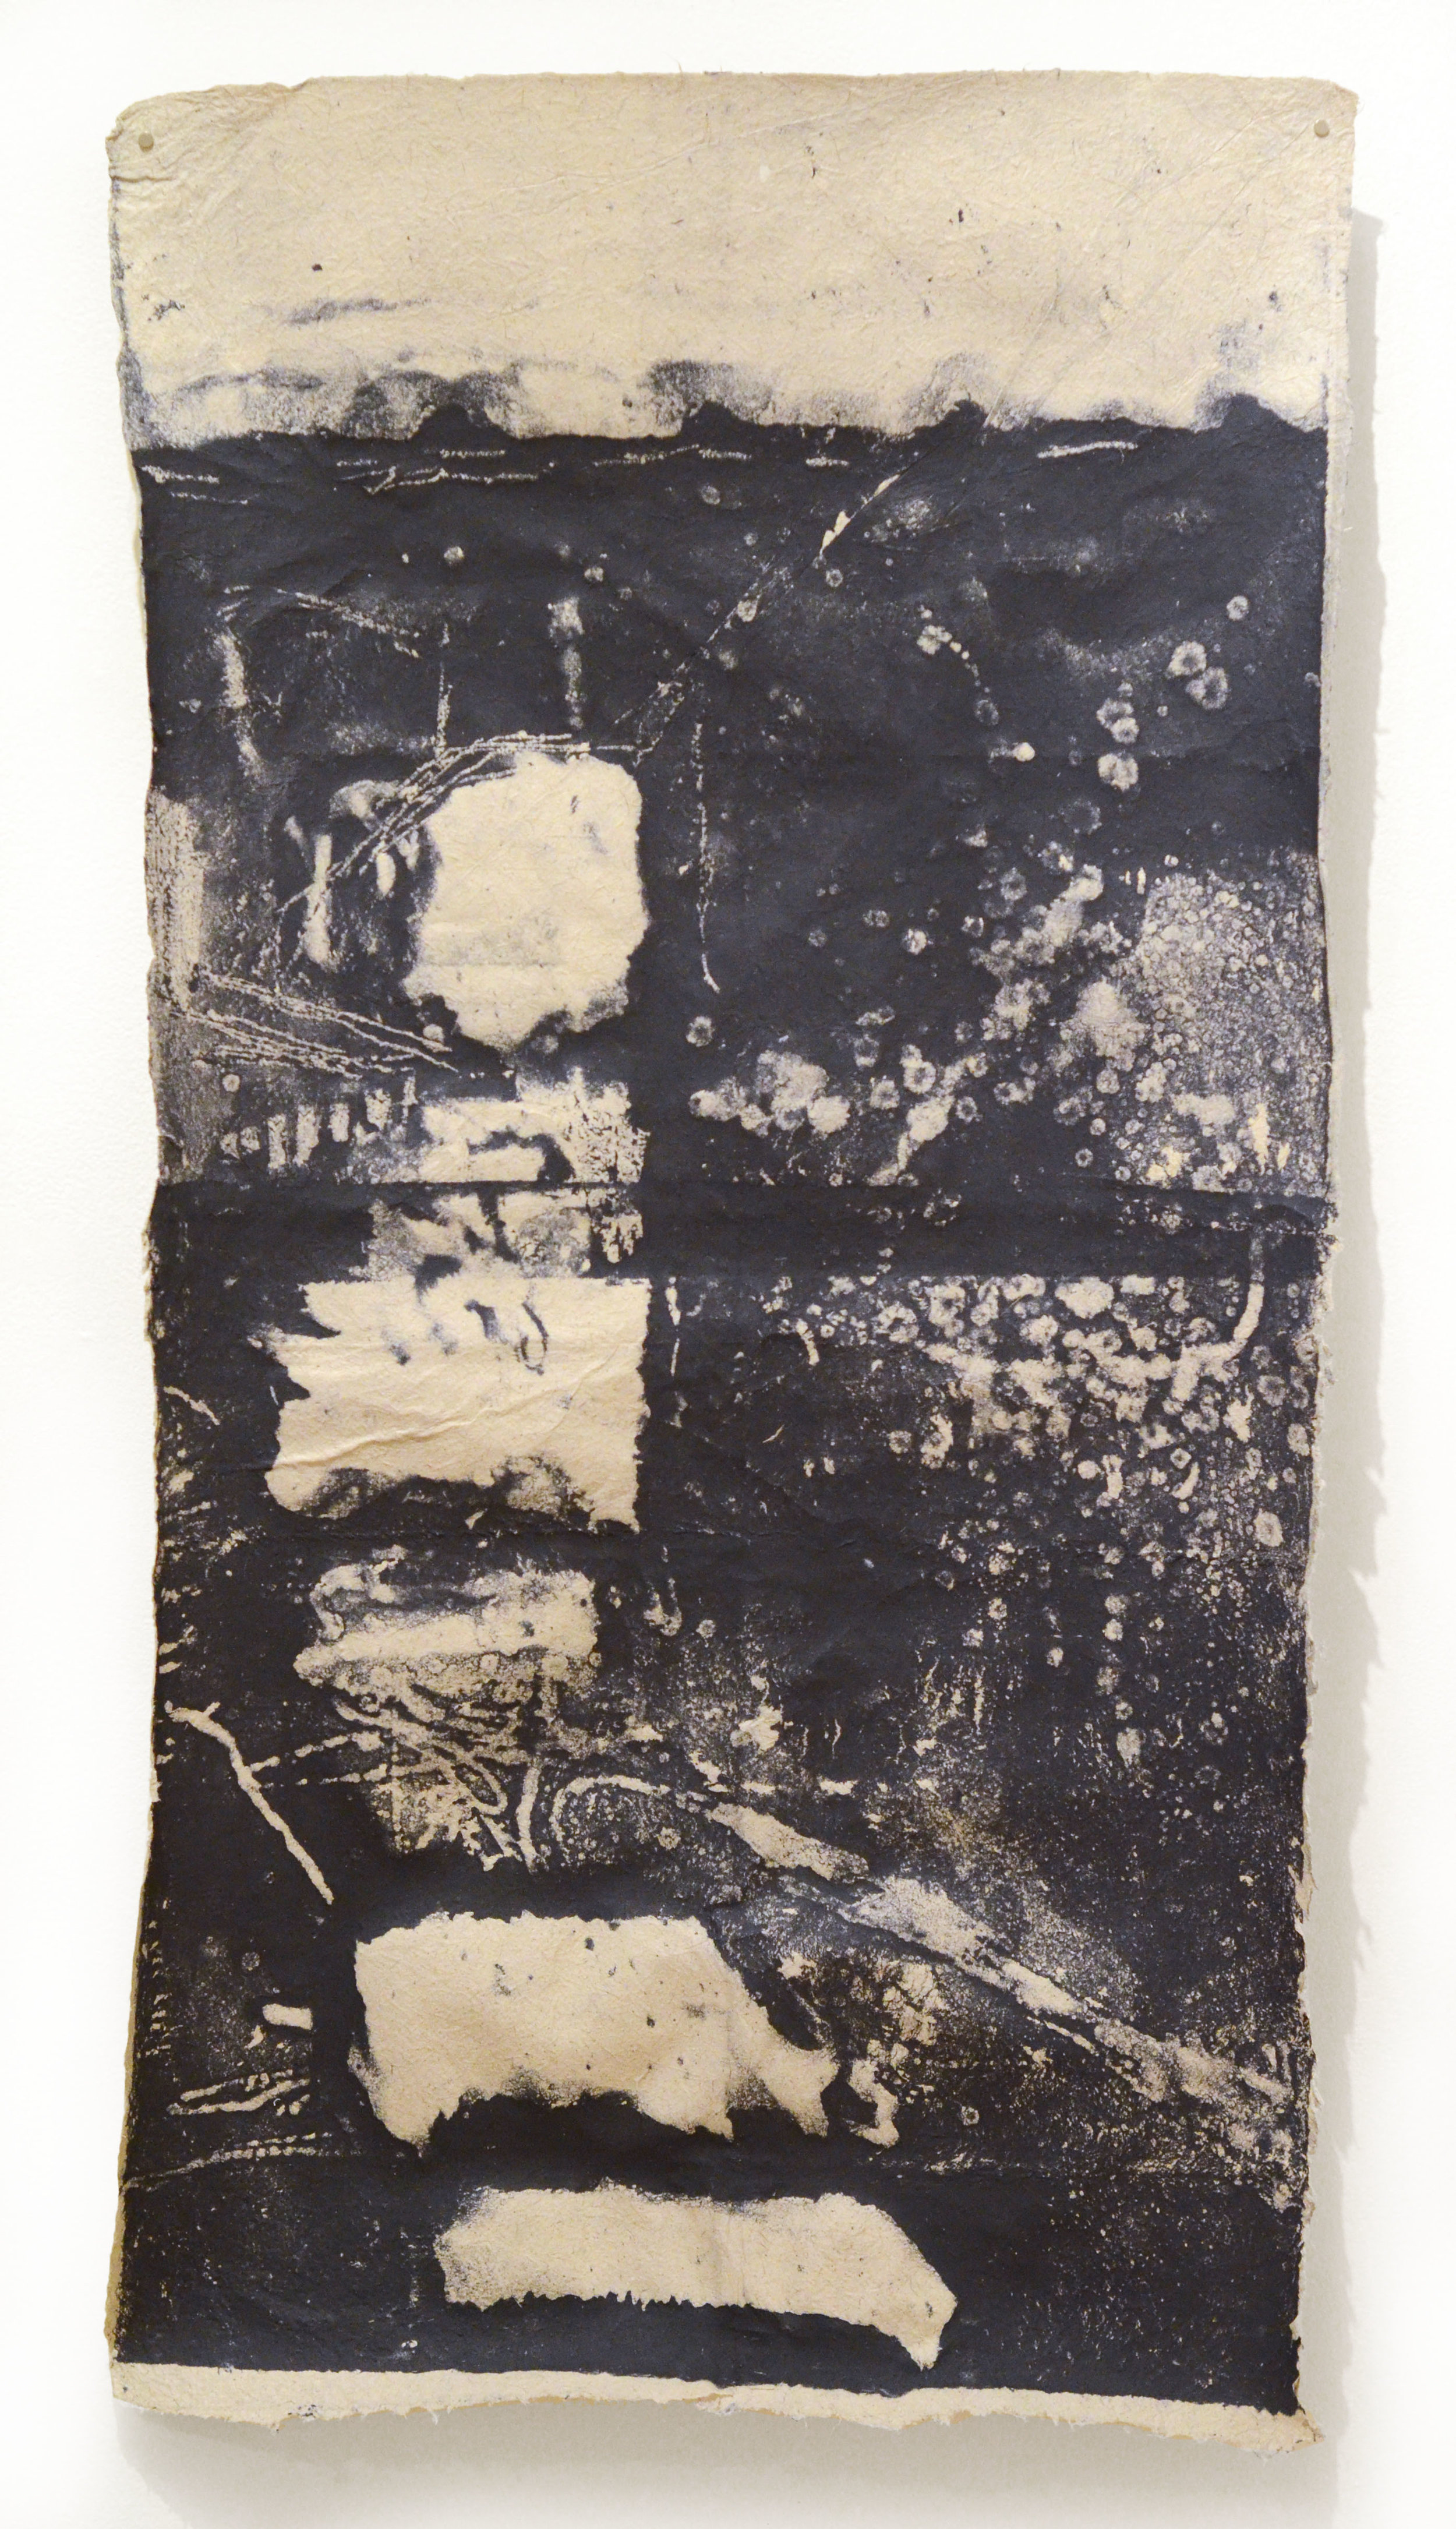 "Shoreline Study #1 of Seekonk River, 22"" x 42"", Handmade Paper Pulp Type with Japanese Knotweed, Recycled Paper Scrap"